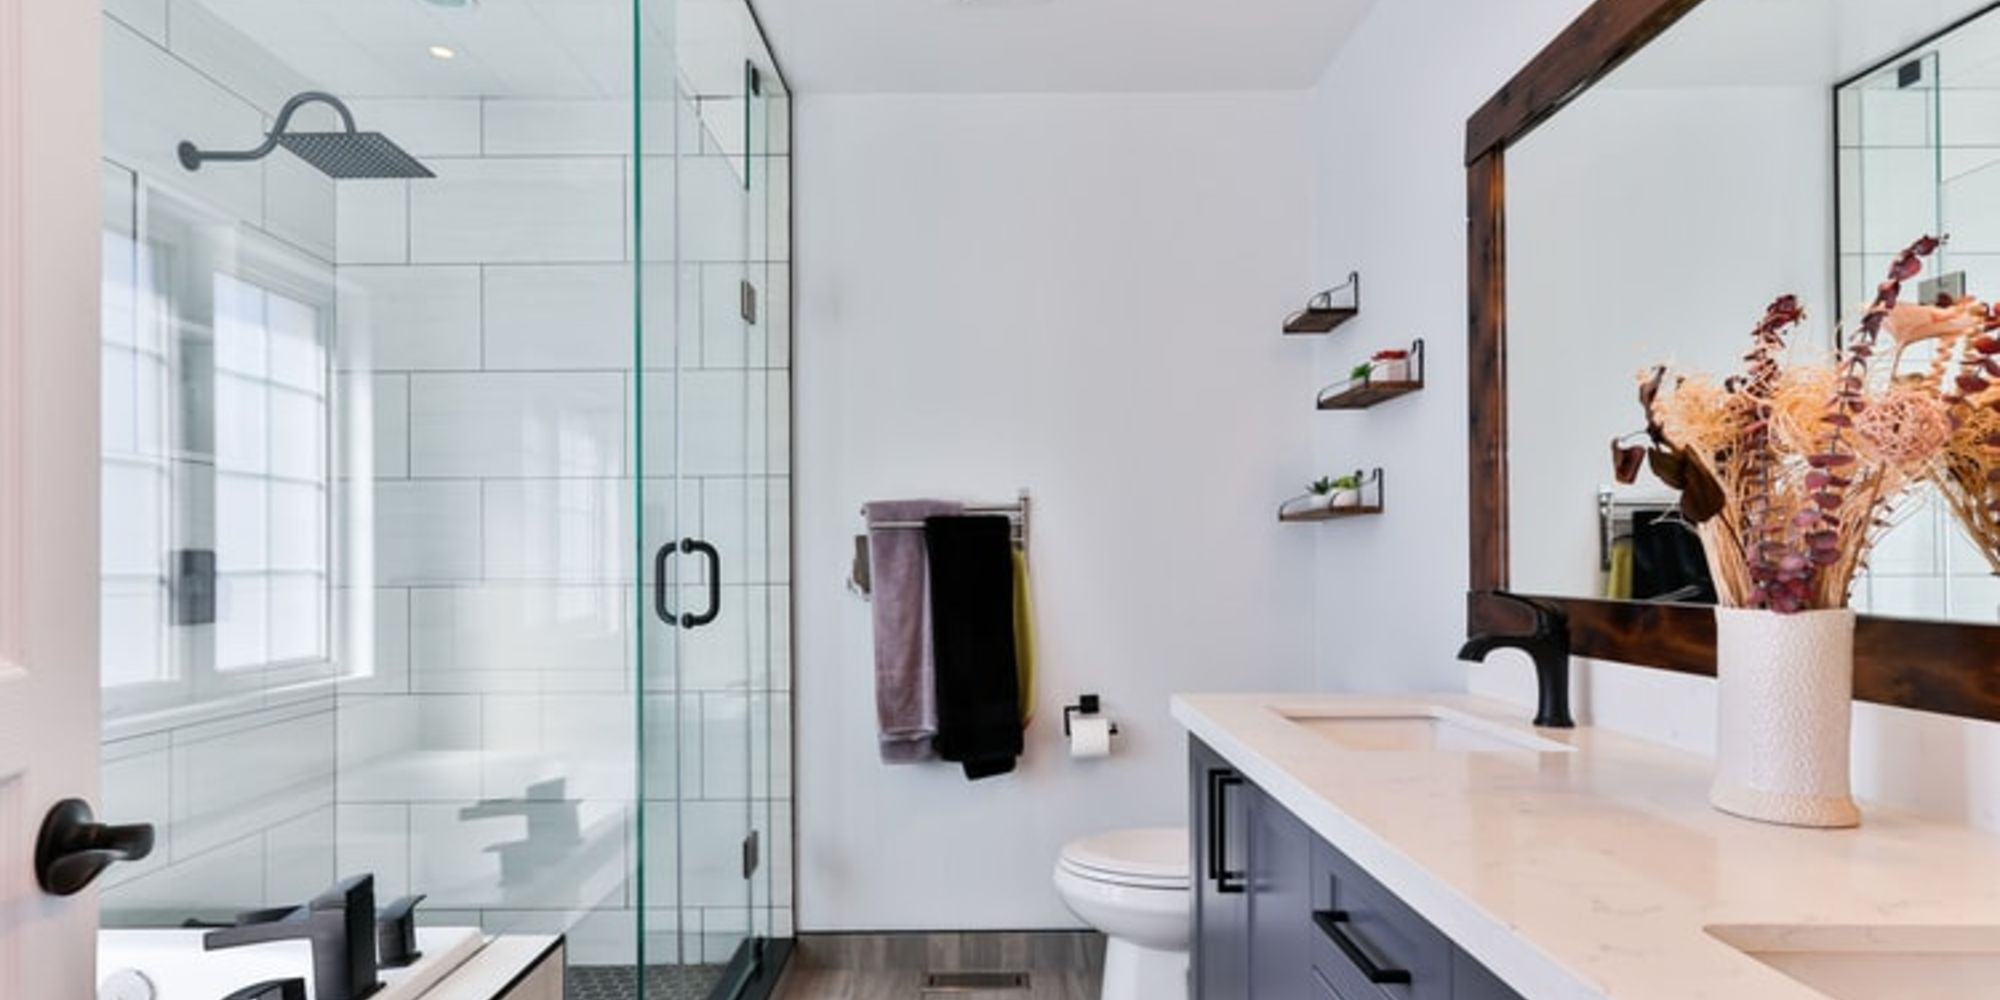 siteassets/img/article/inspiration/------5/bathroom-style-2.jpg